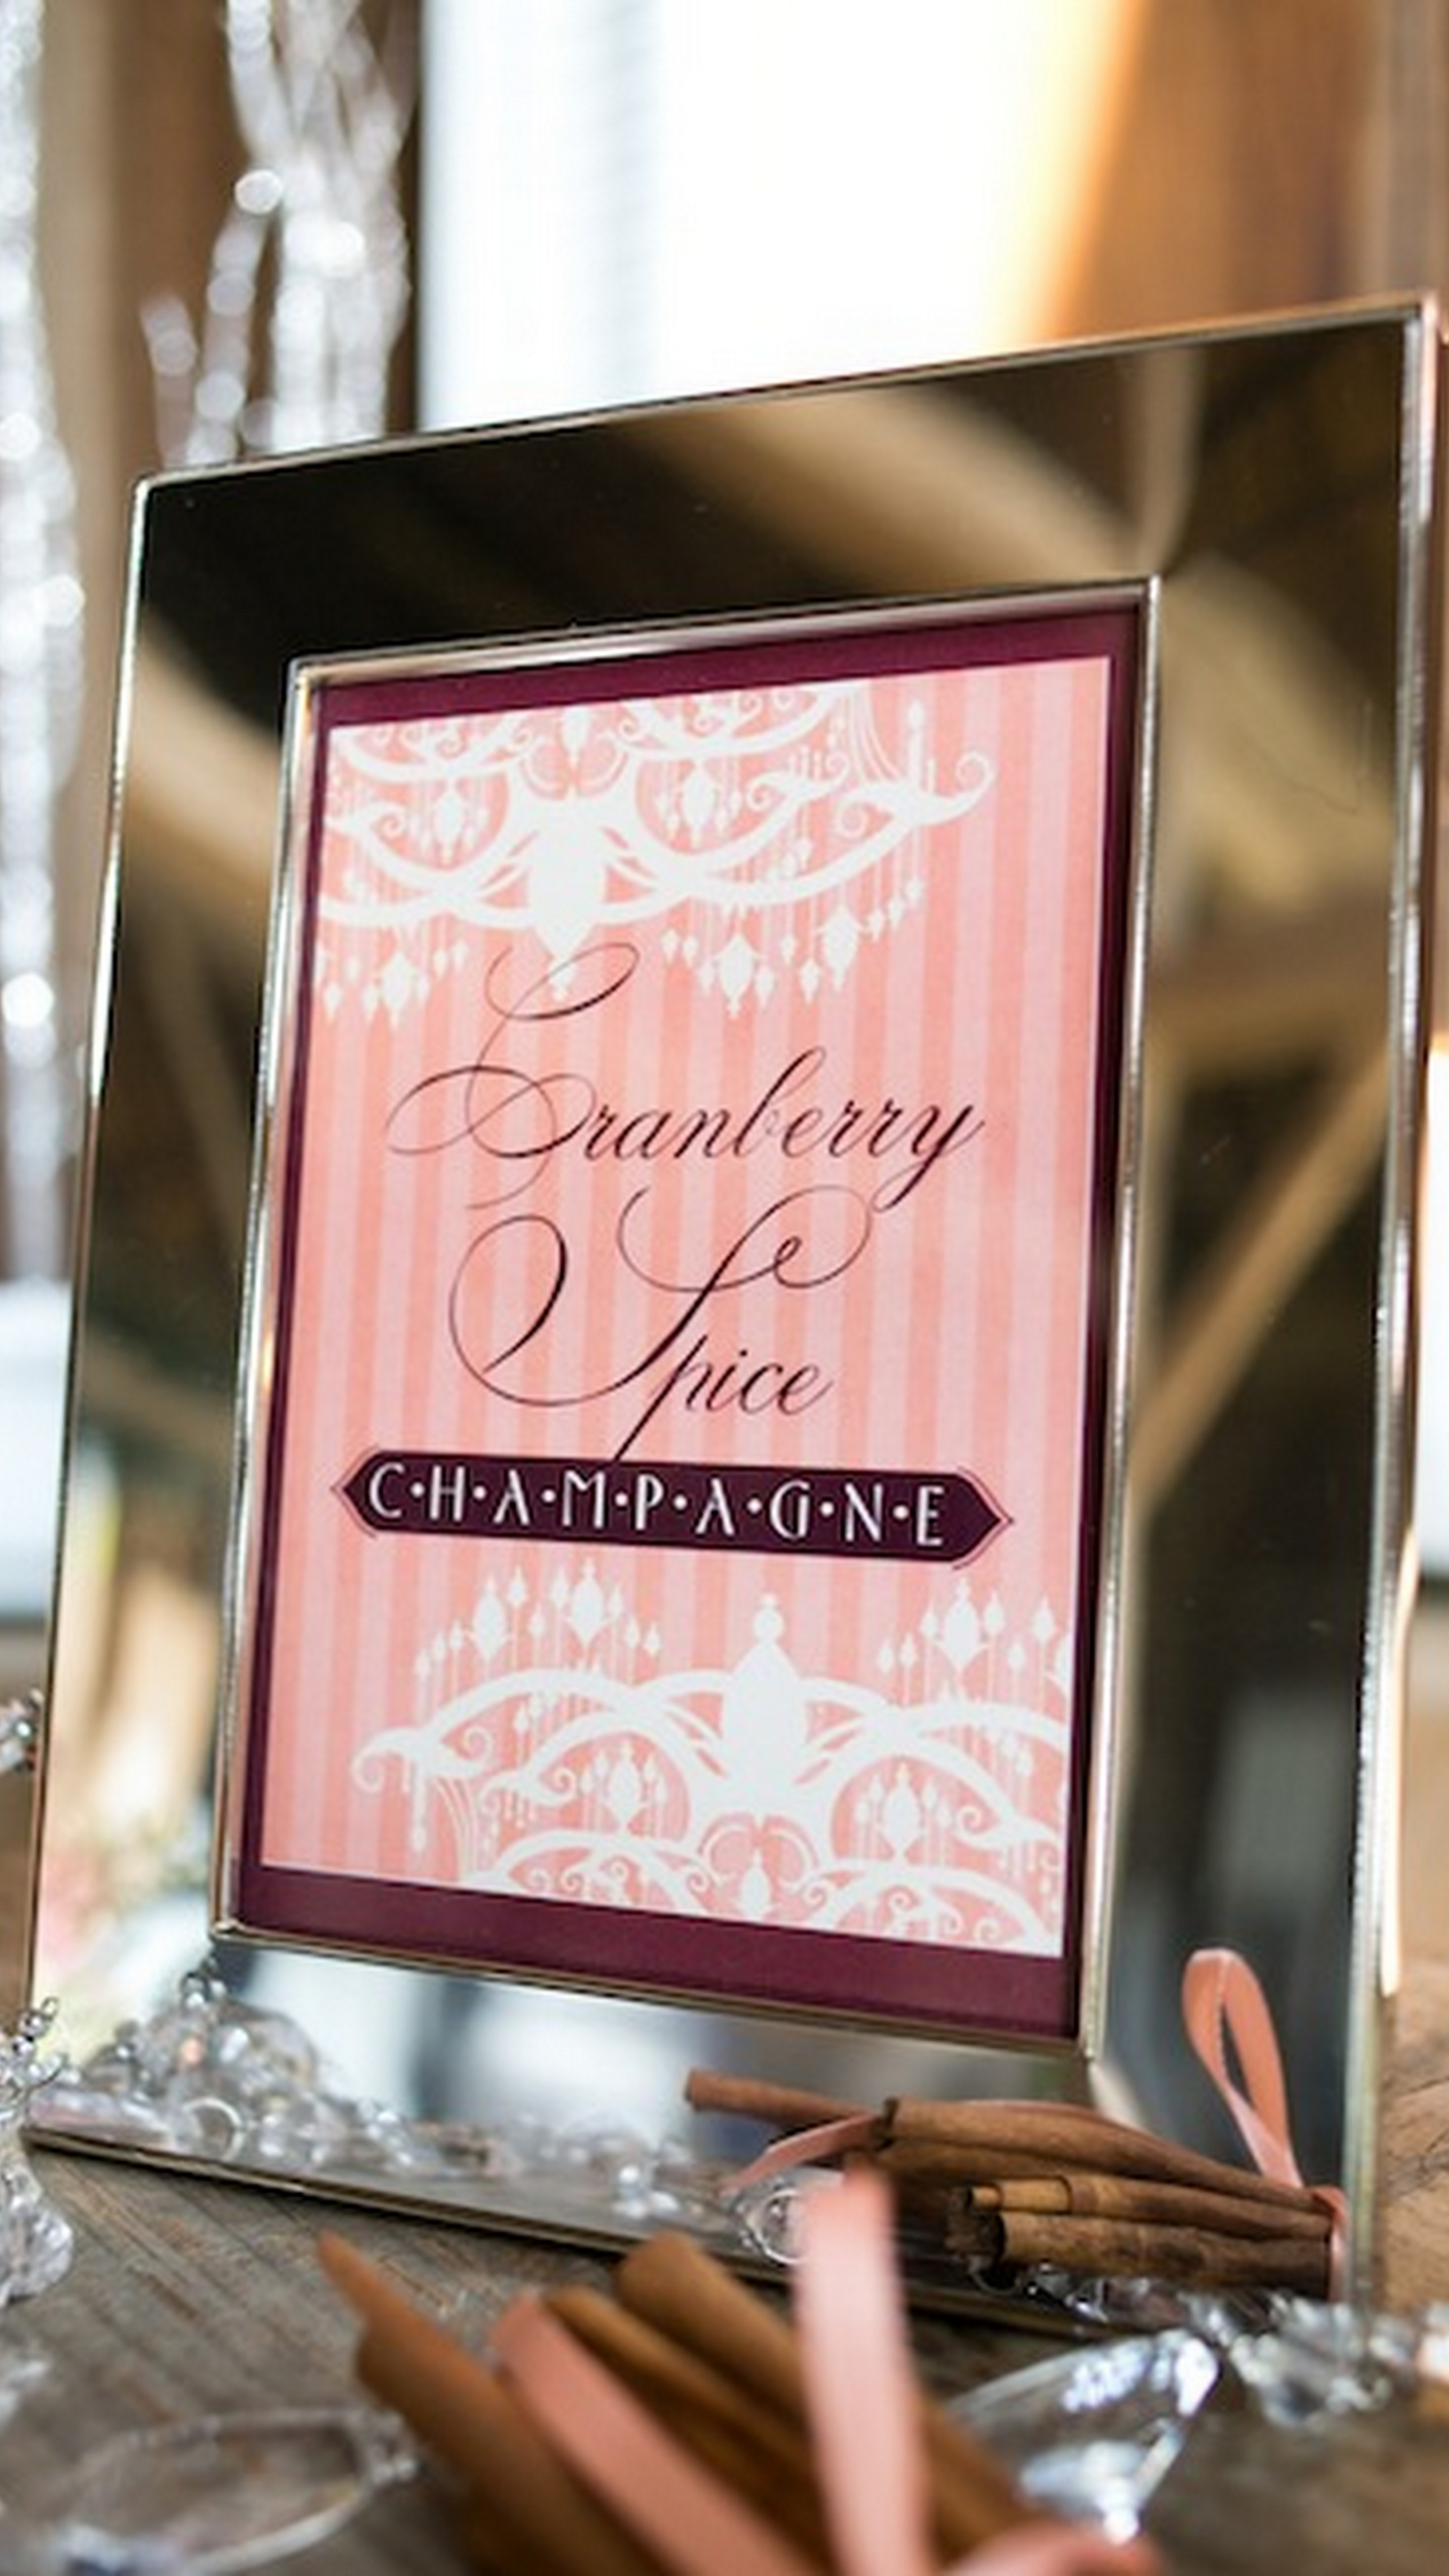 Champagne & Spice Bridal Shower - TrueBlu | Bridesmaid Resource for ...